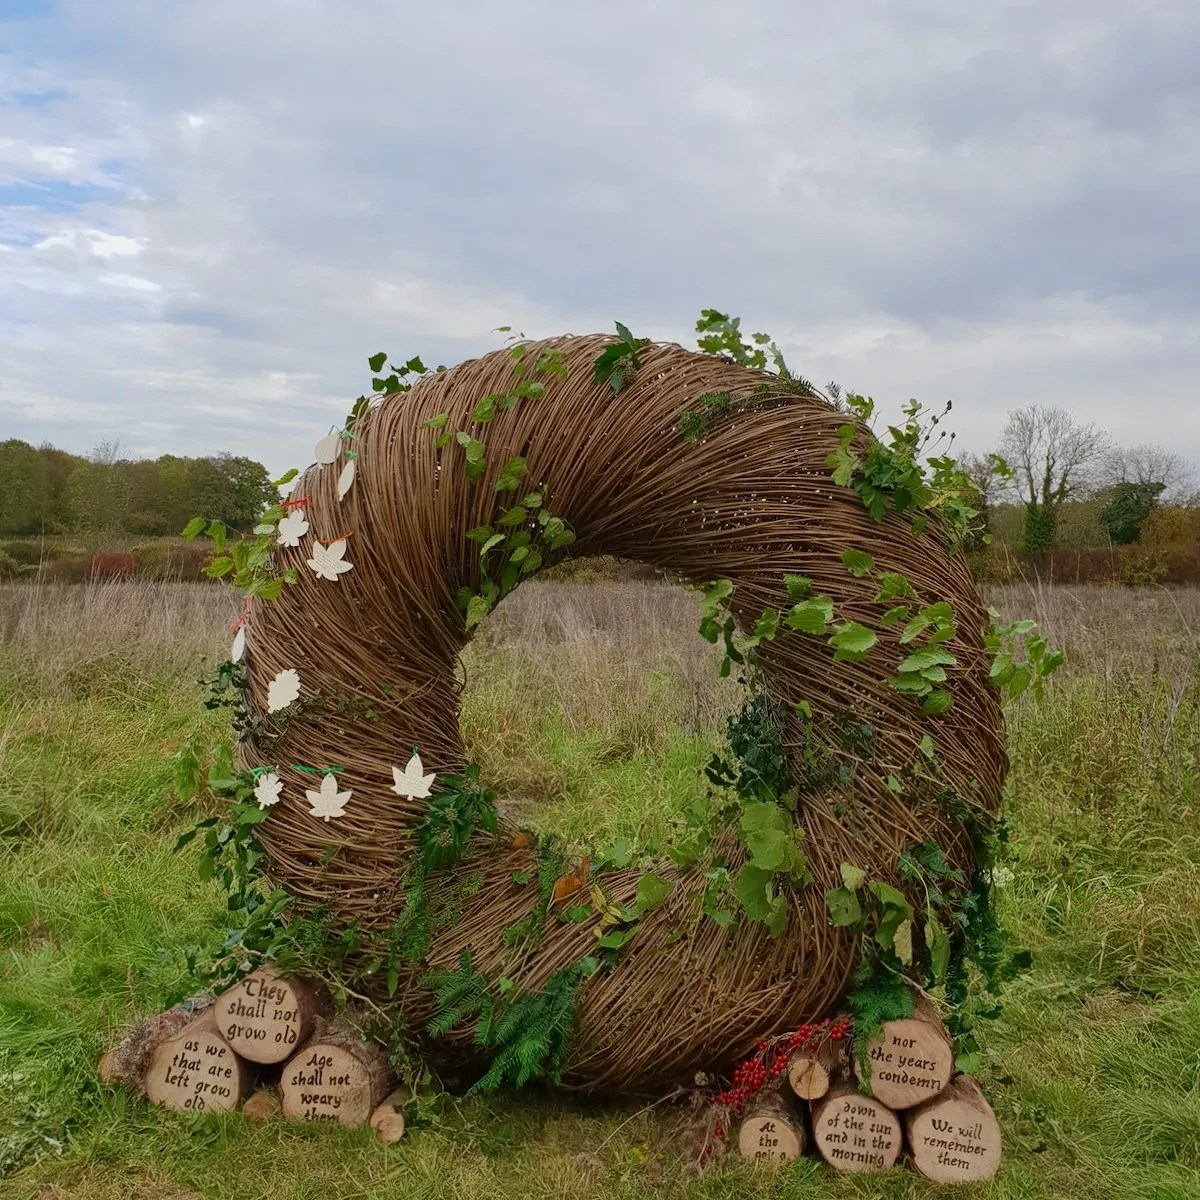 Willow remembrance wreath woven by Victoria Westaway at Langley Vale Wood